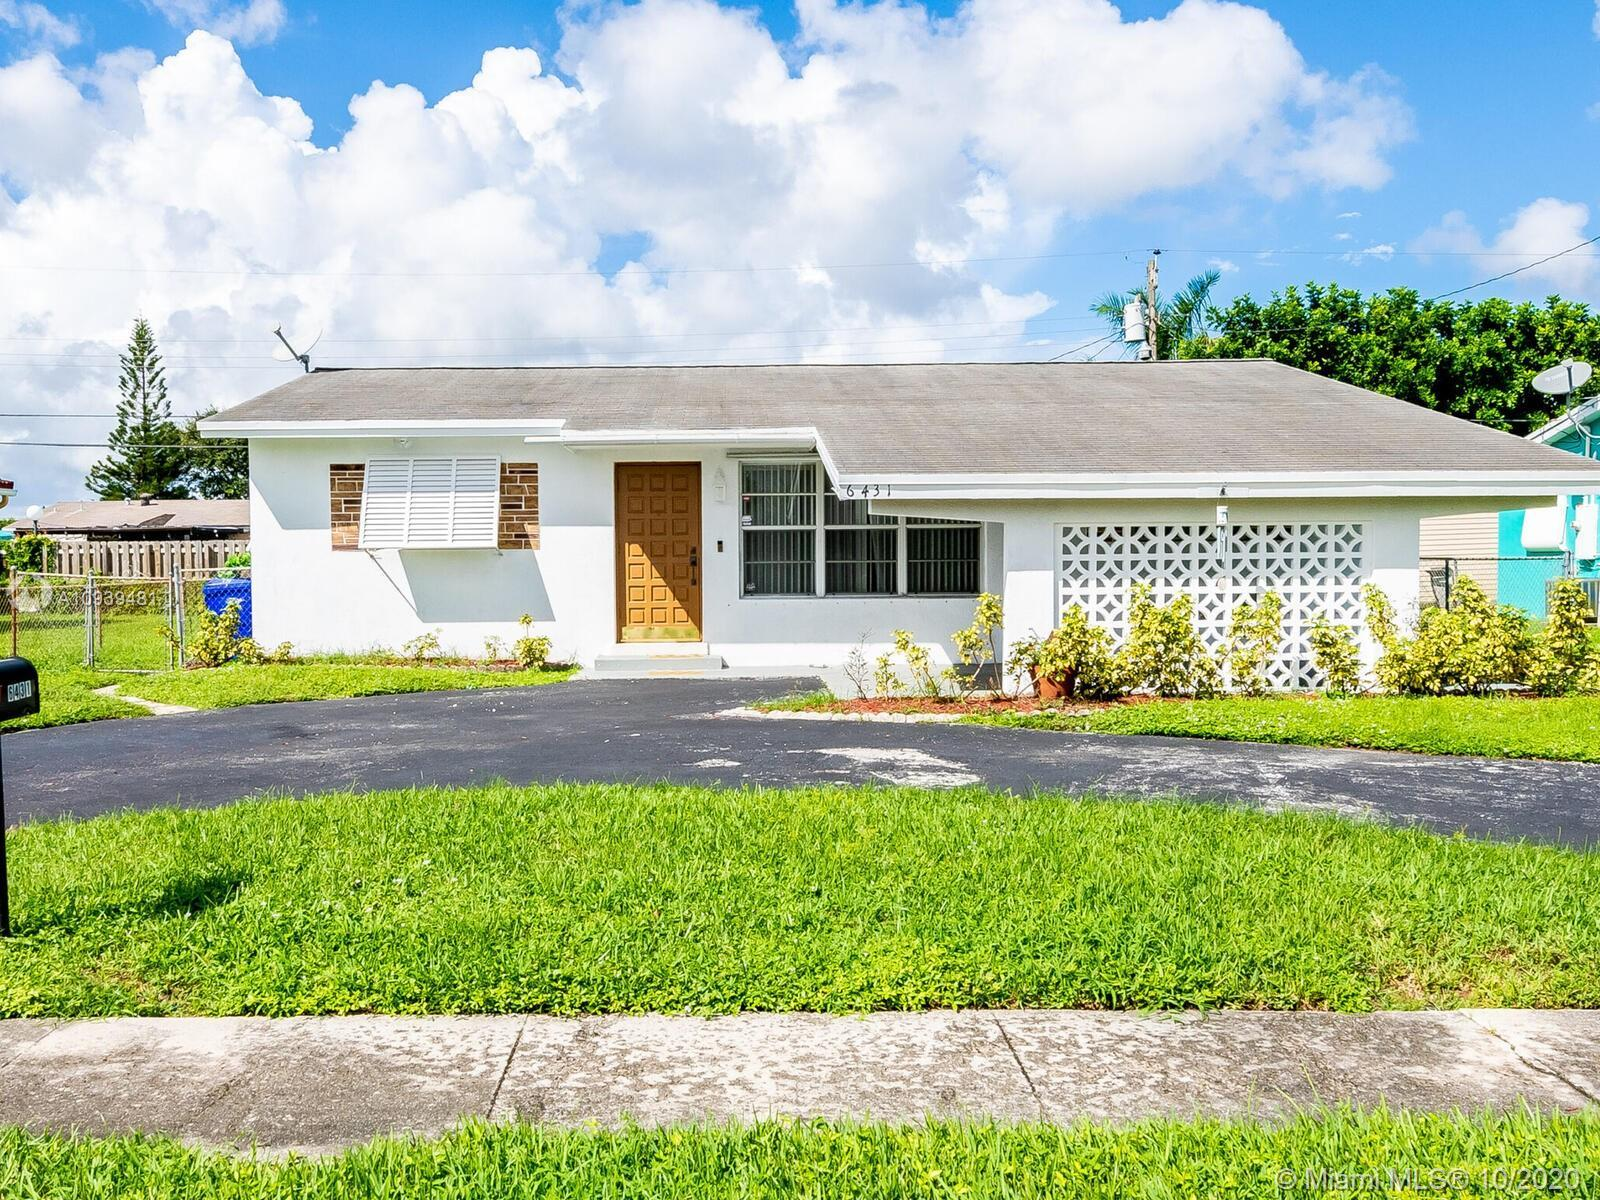 Spacious and Bright 3 Bedrooms 2 Bathrooms Single Family House ready to move in with a fenced back y